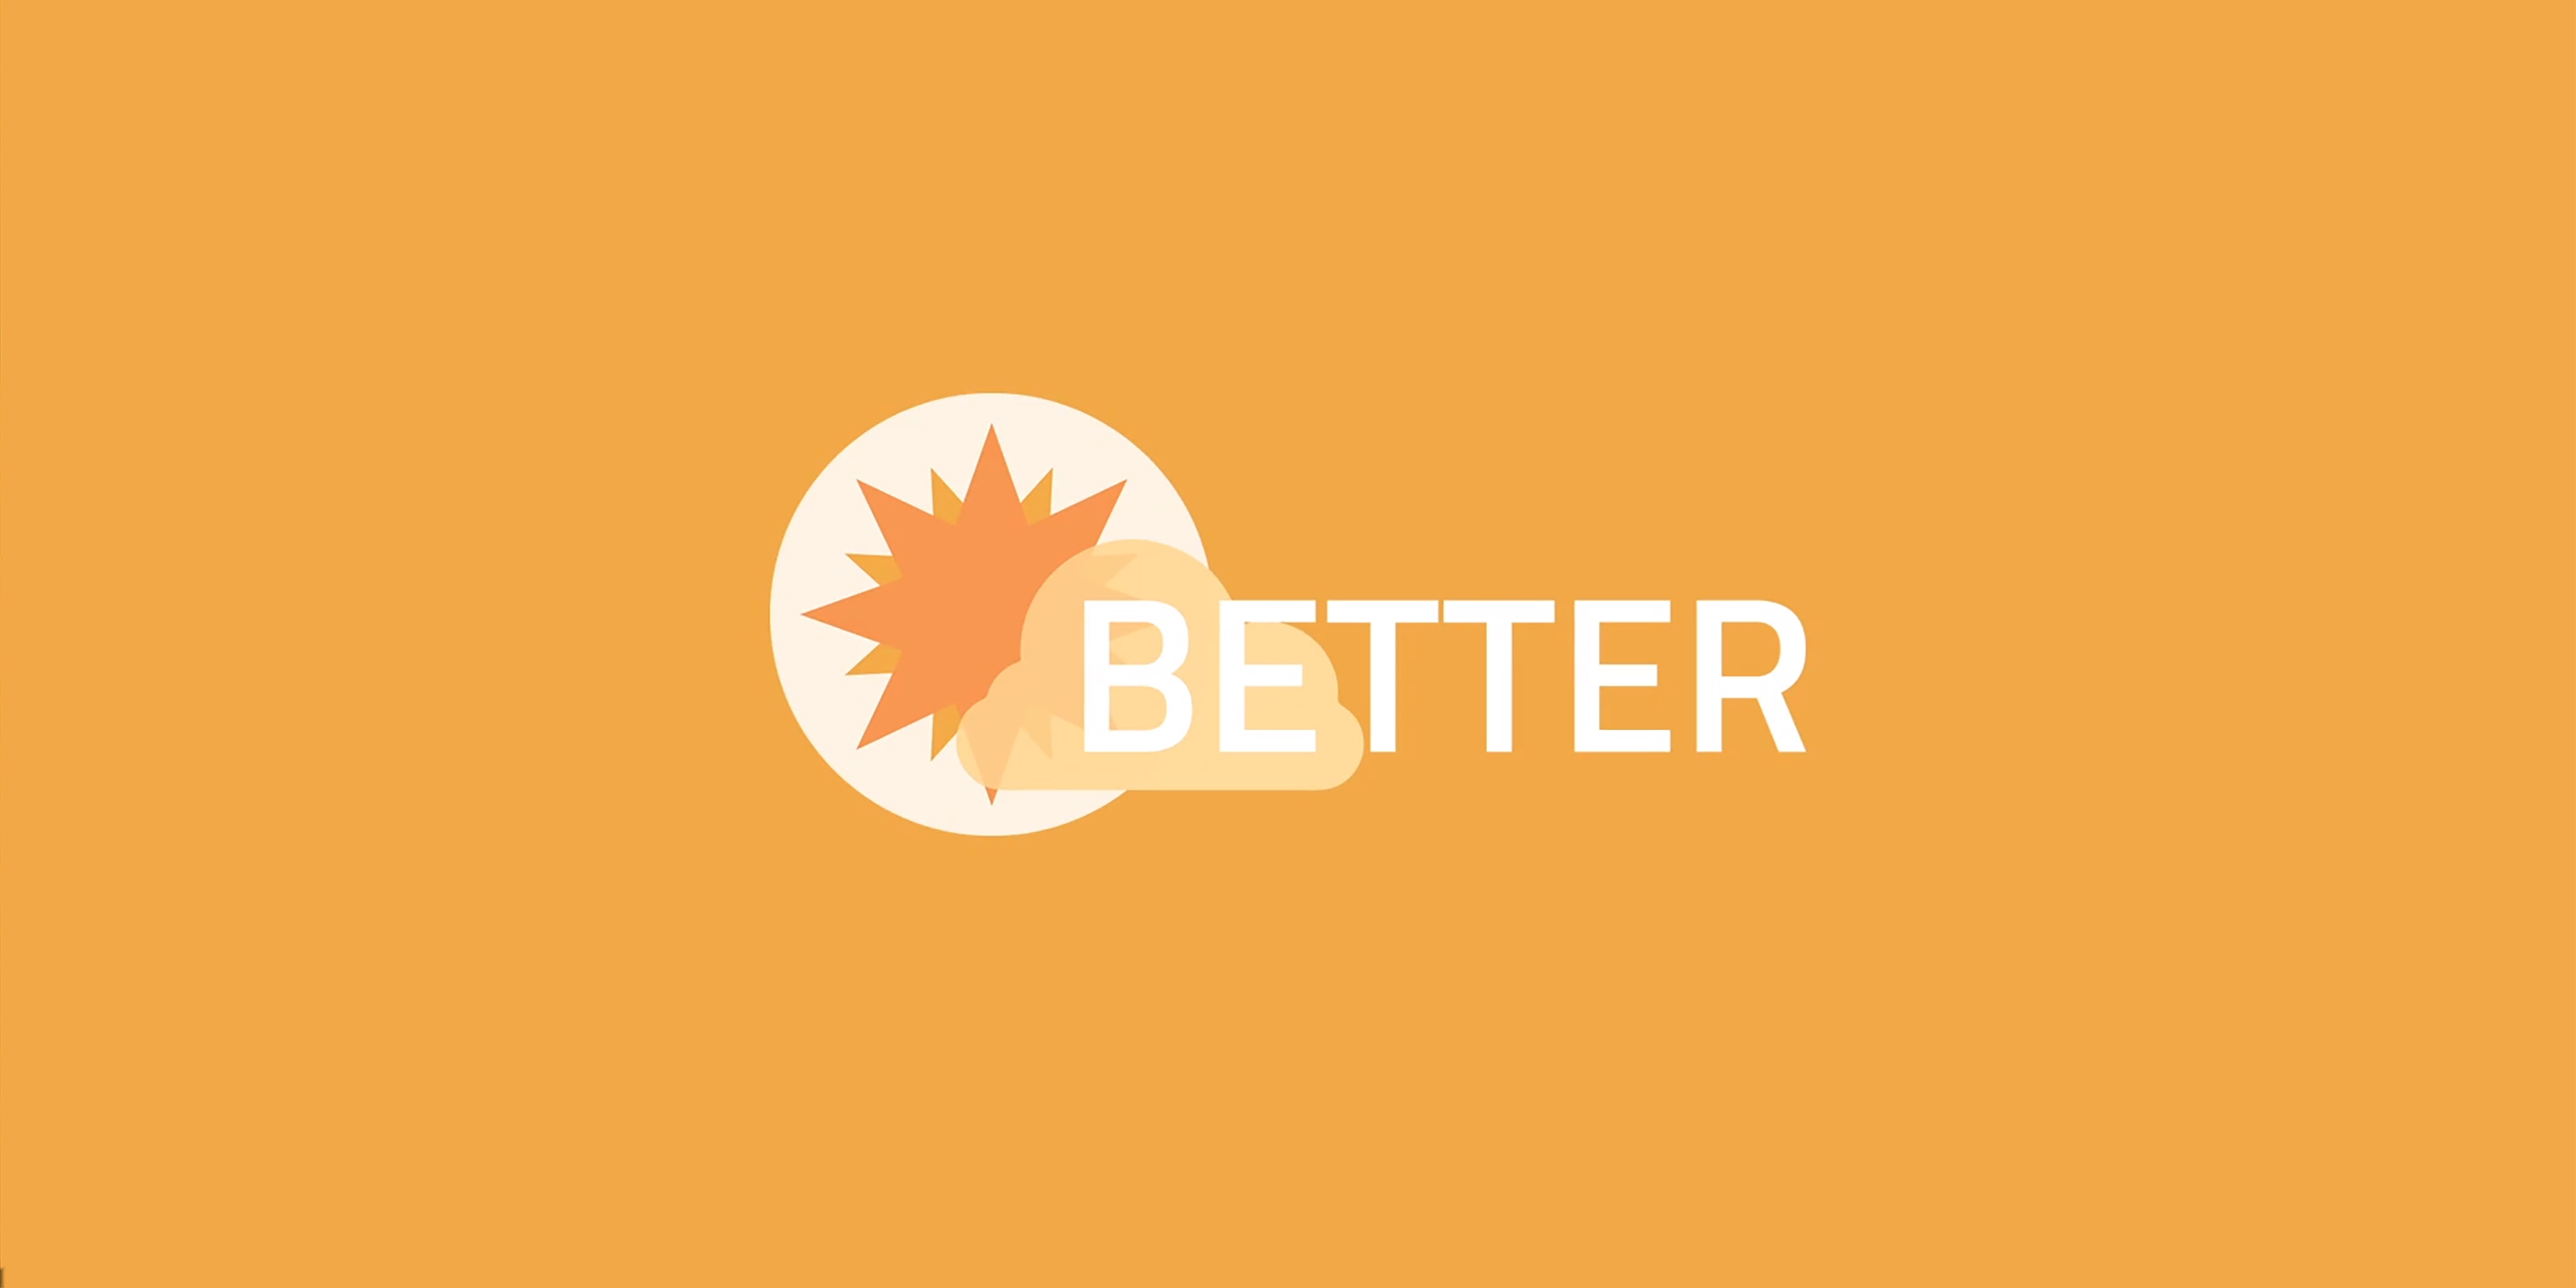 New online study for earlier stage bipolar now open! – The BETTER Research Program